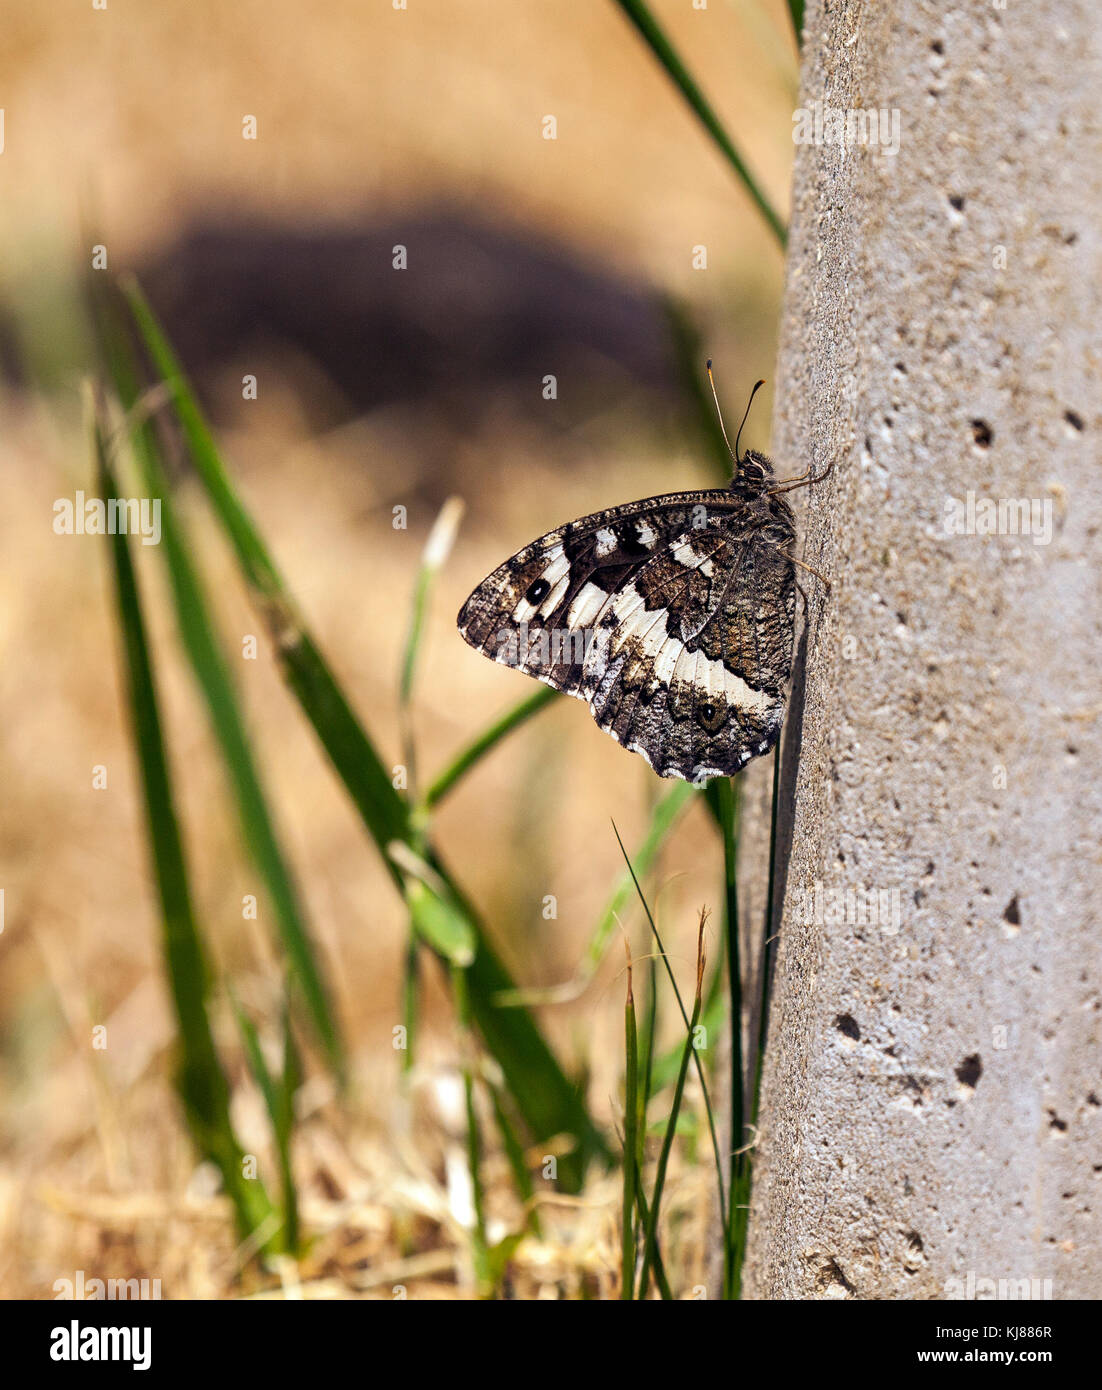 Rock Grayling butterfly Hipparchia alcyone basking in the sun on a concrete post at Riaza central Spain - Stock Image